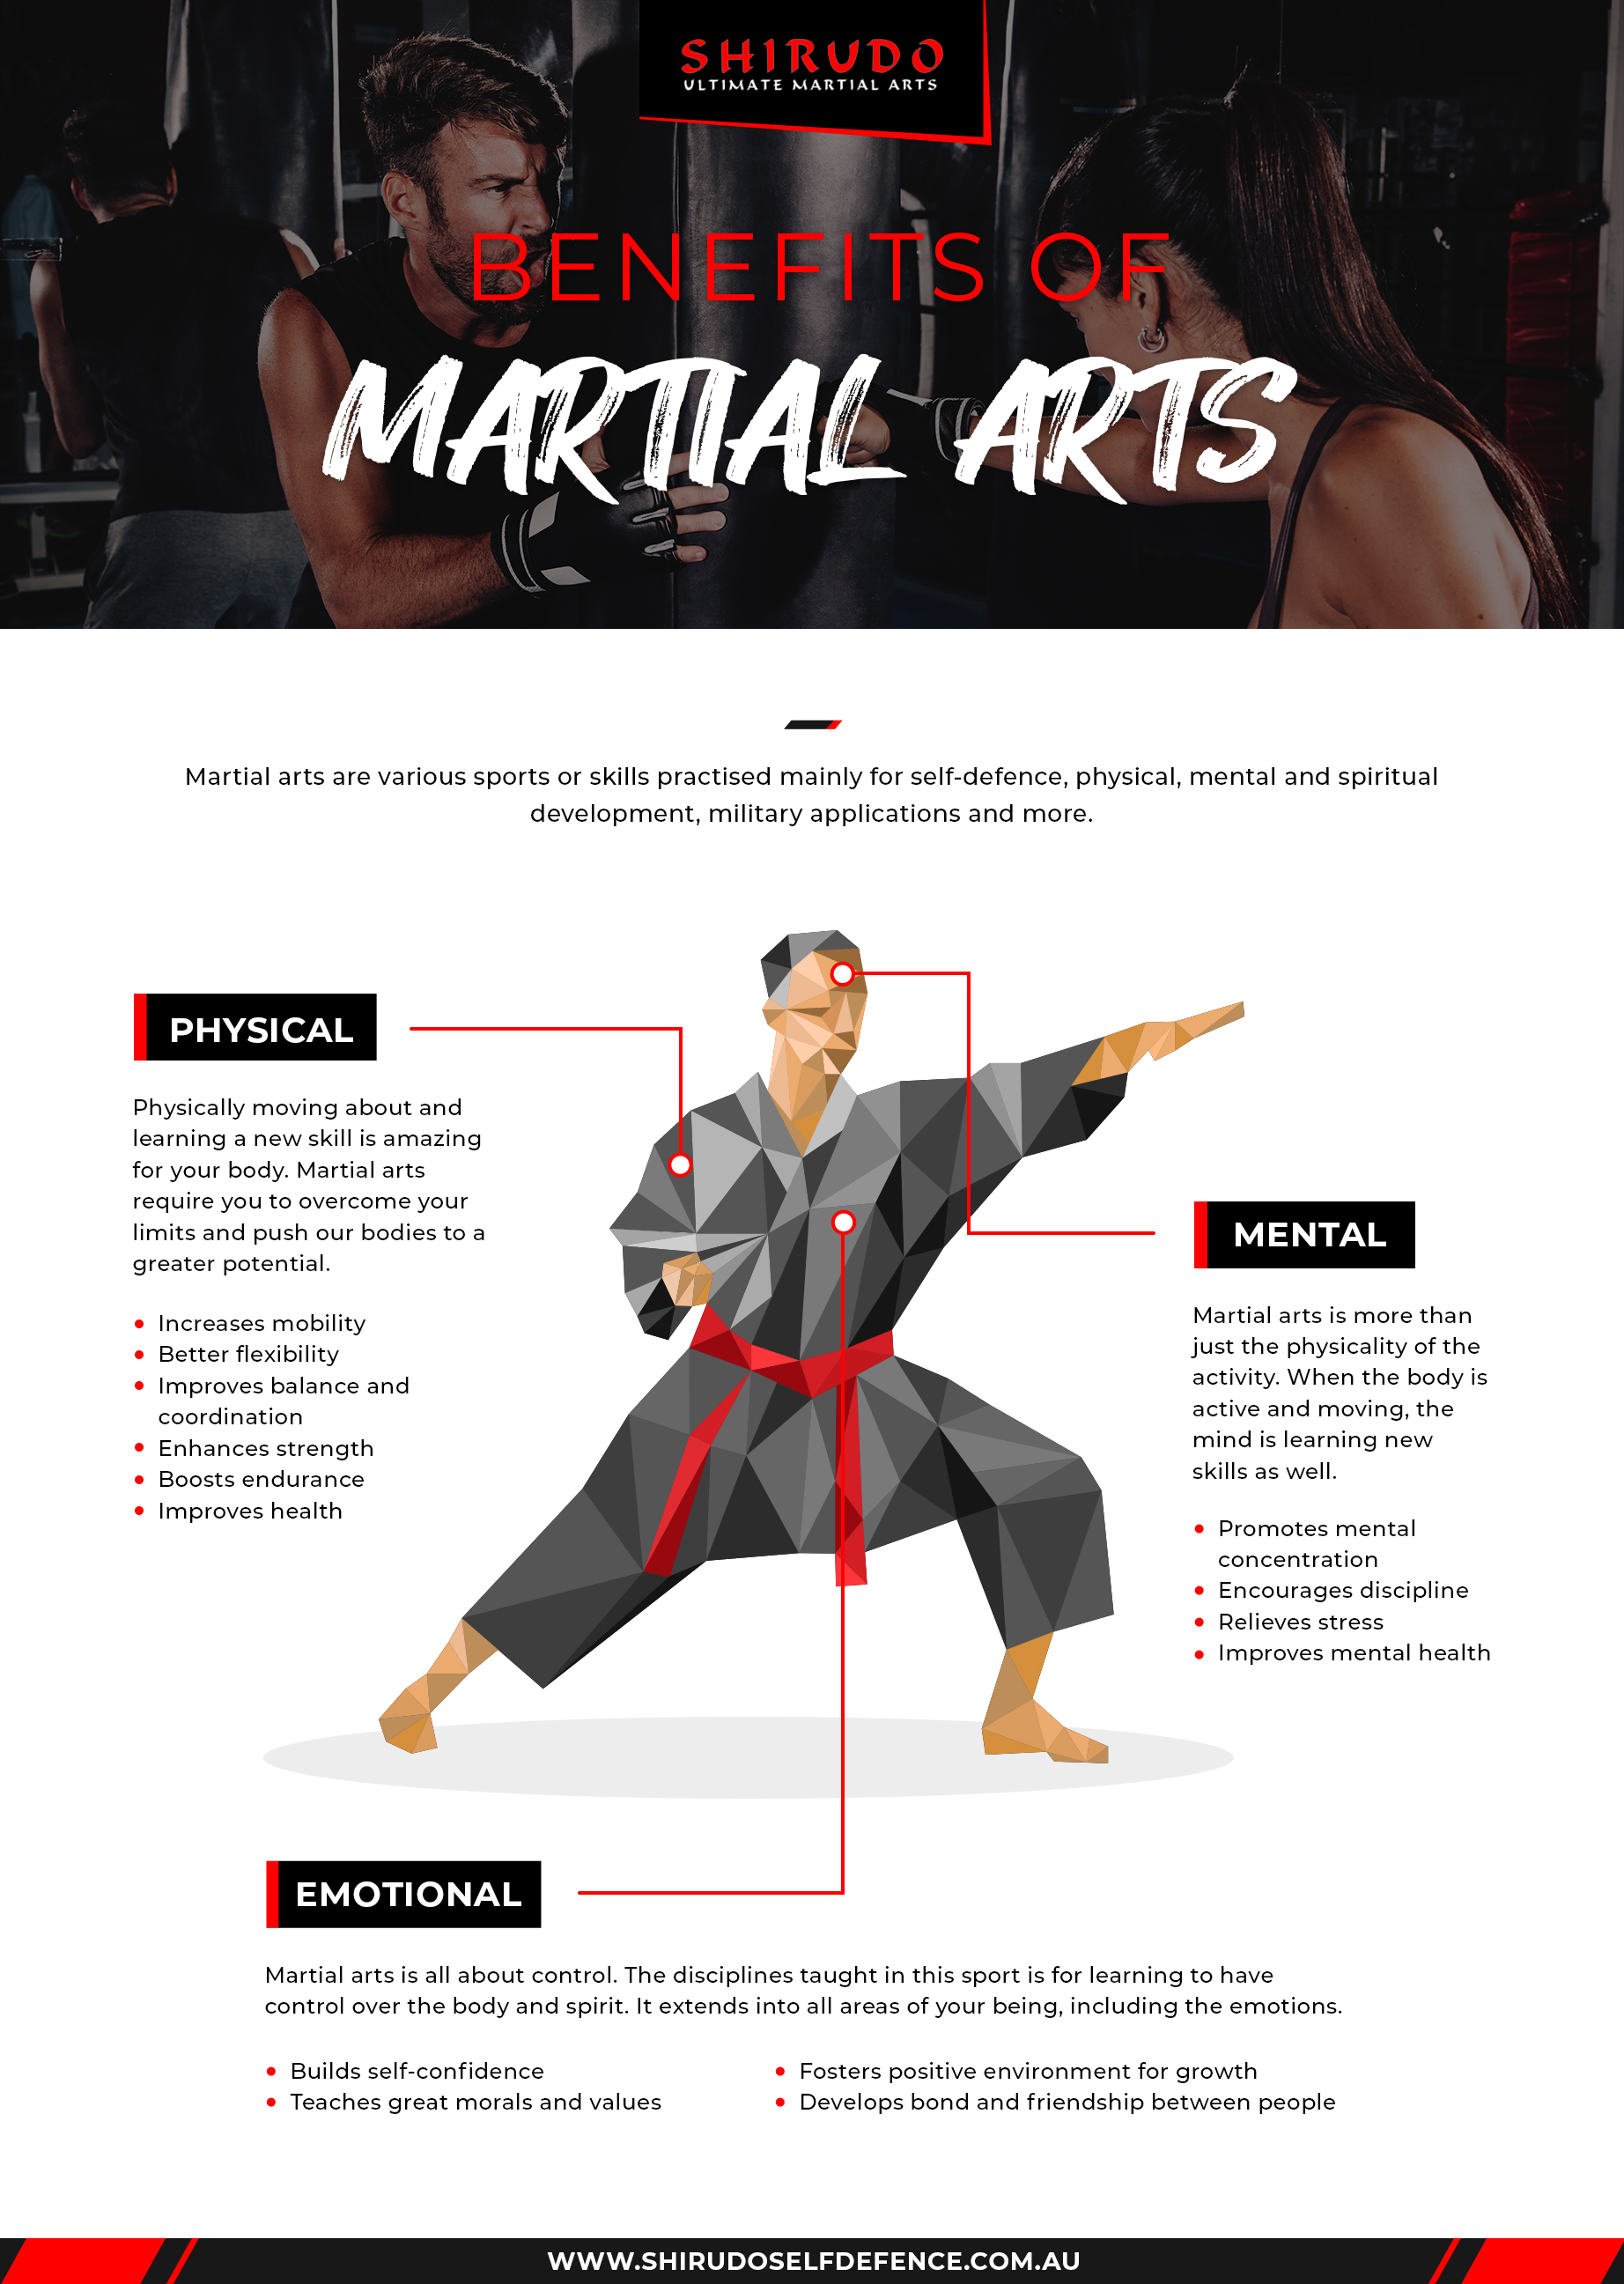 Benefits of martial arts infographic